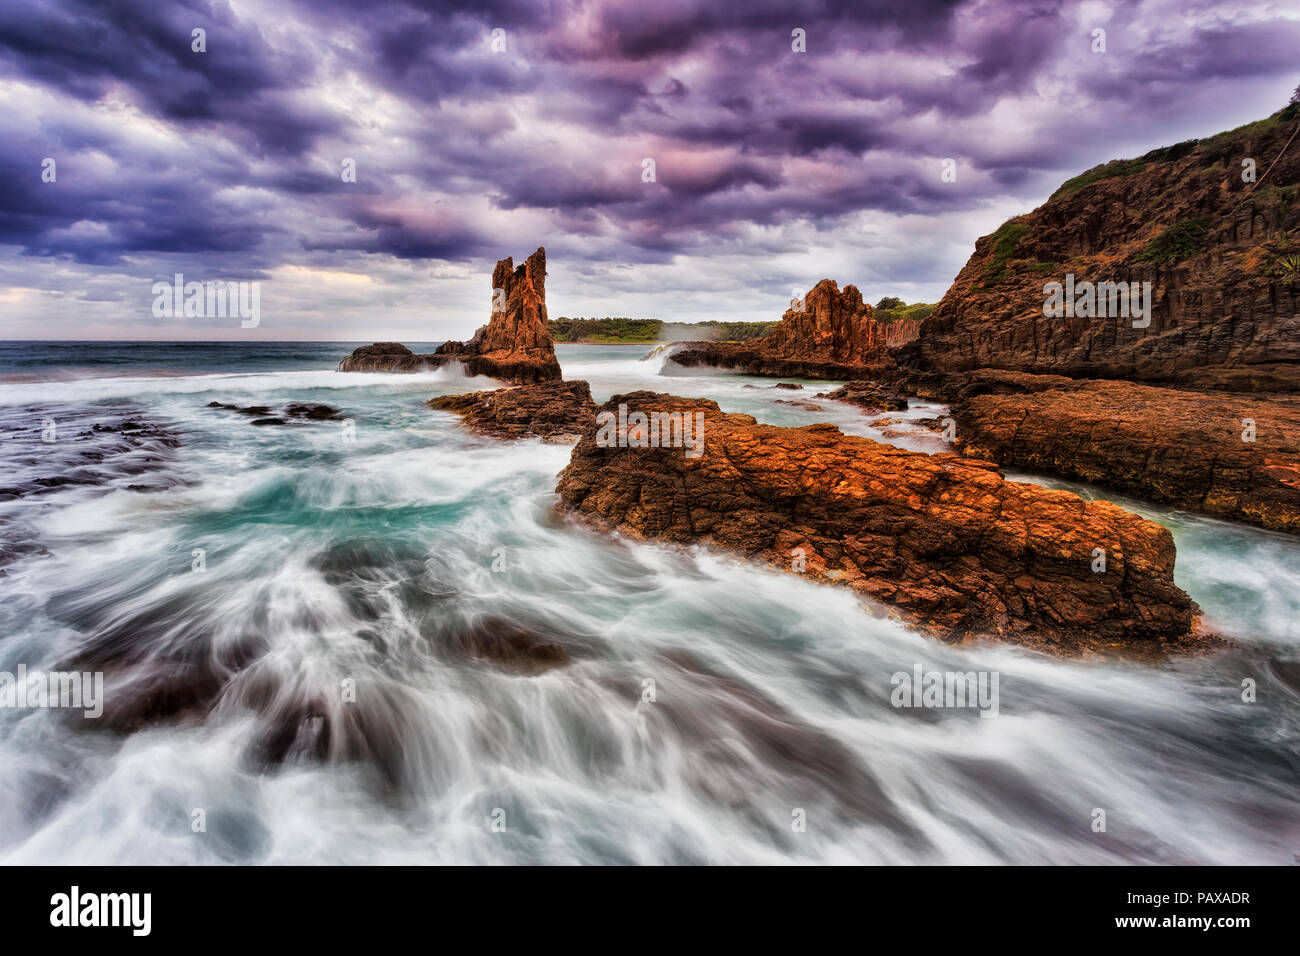 Colourful golden sandstone cathedral rocks at Bombo beach in Kiama, NSW, Australia, at stormy sunset under cloudy sky. Stock Photo